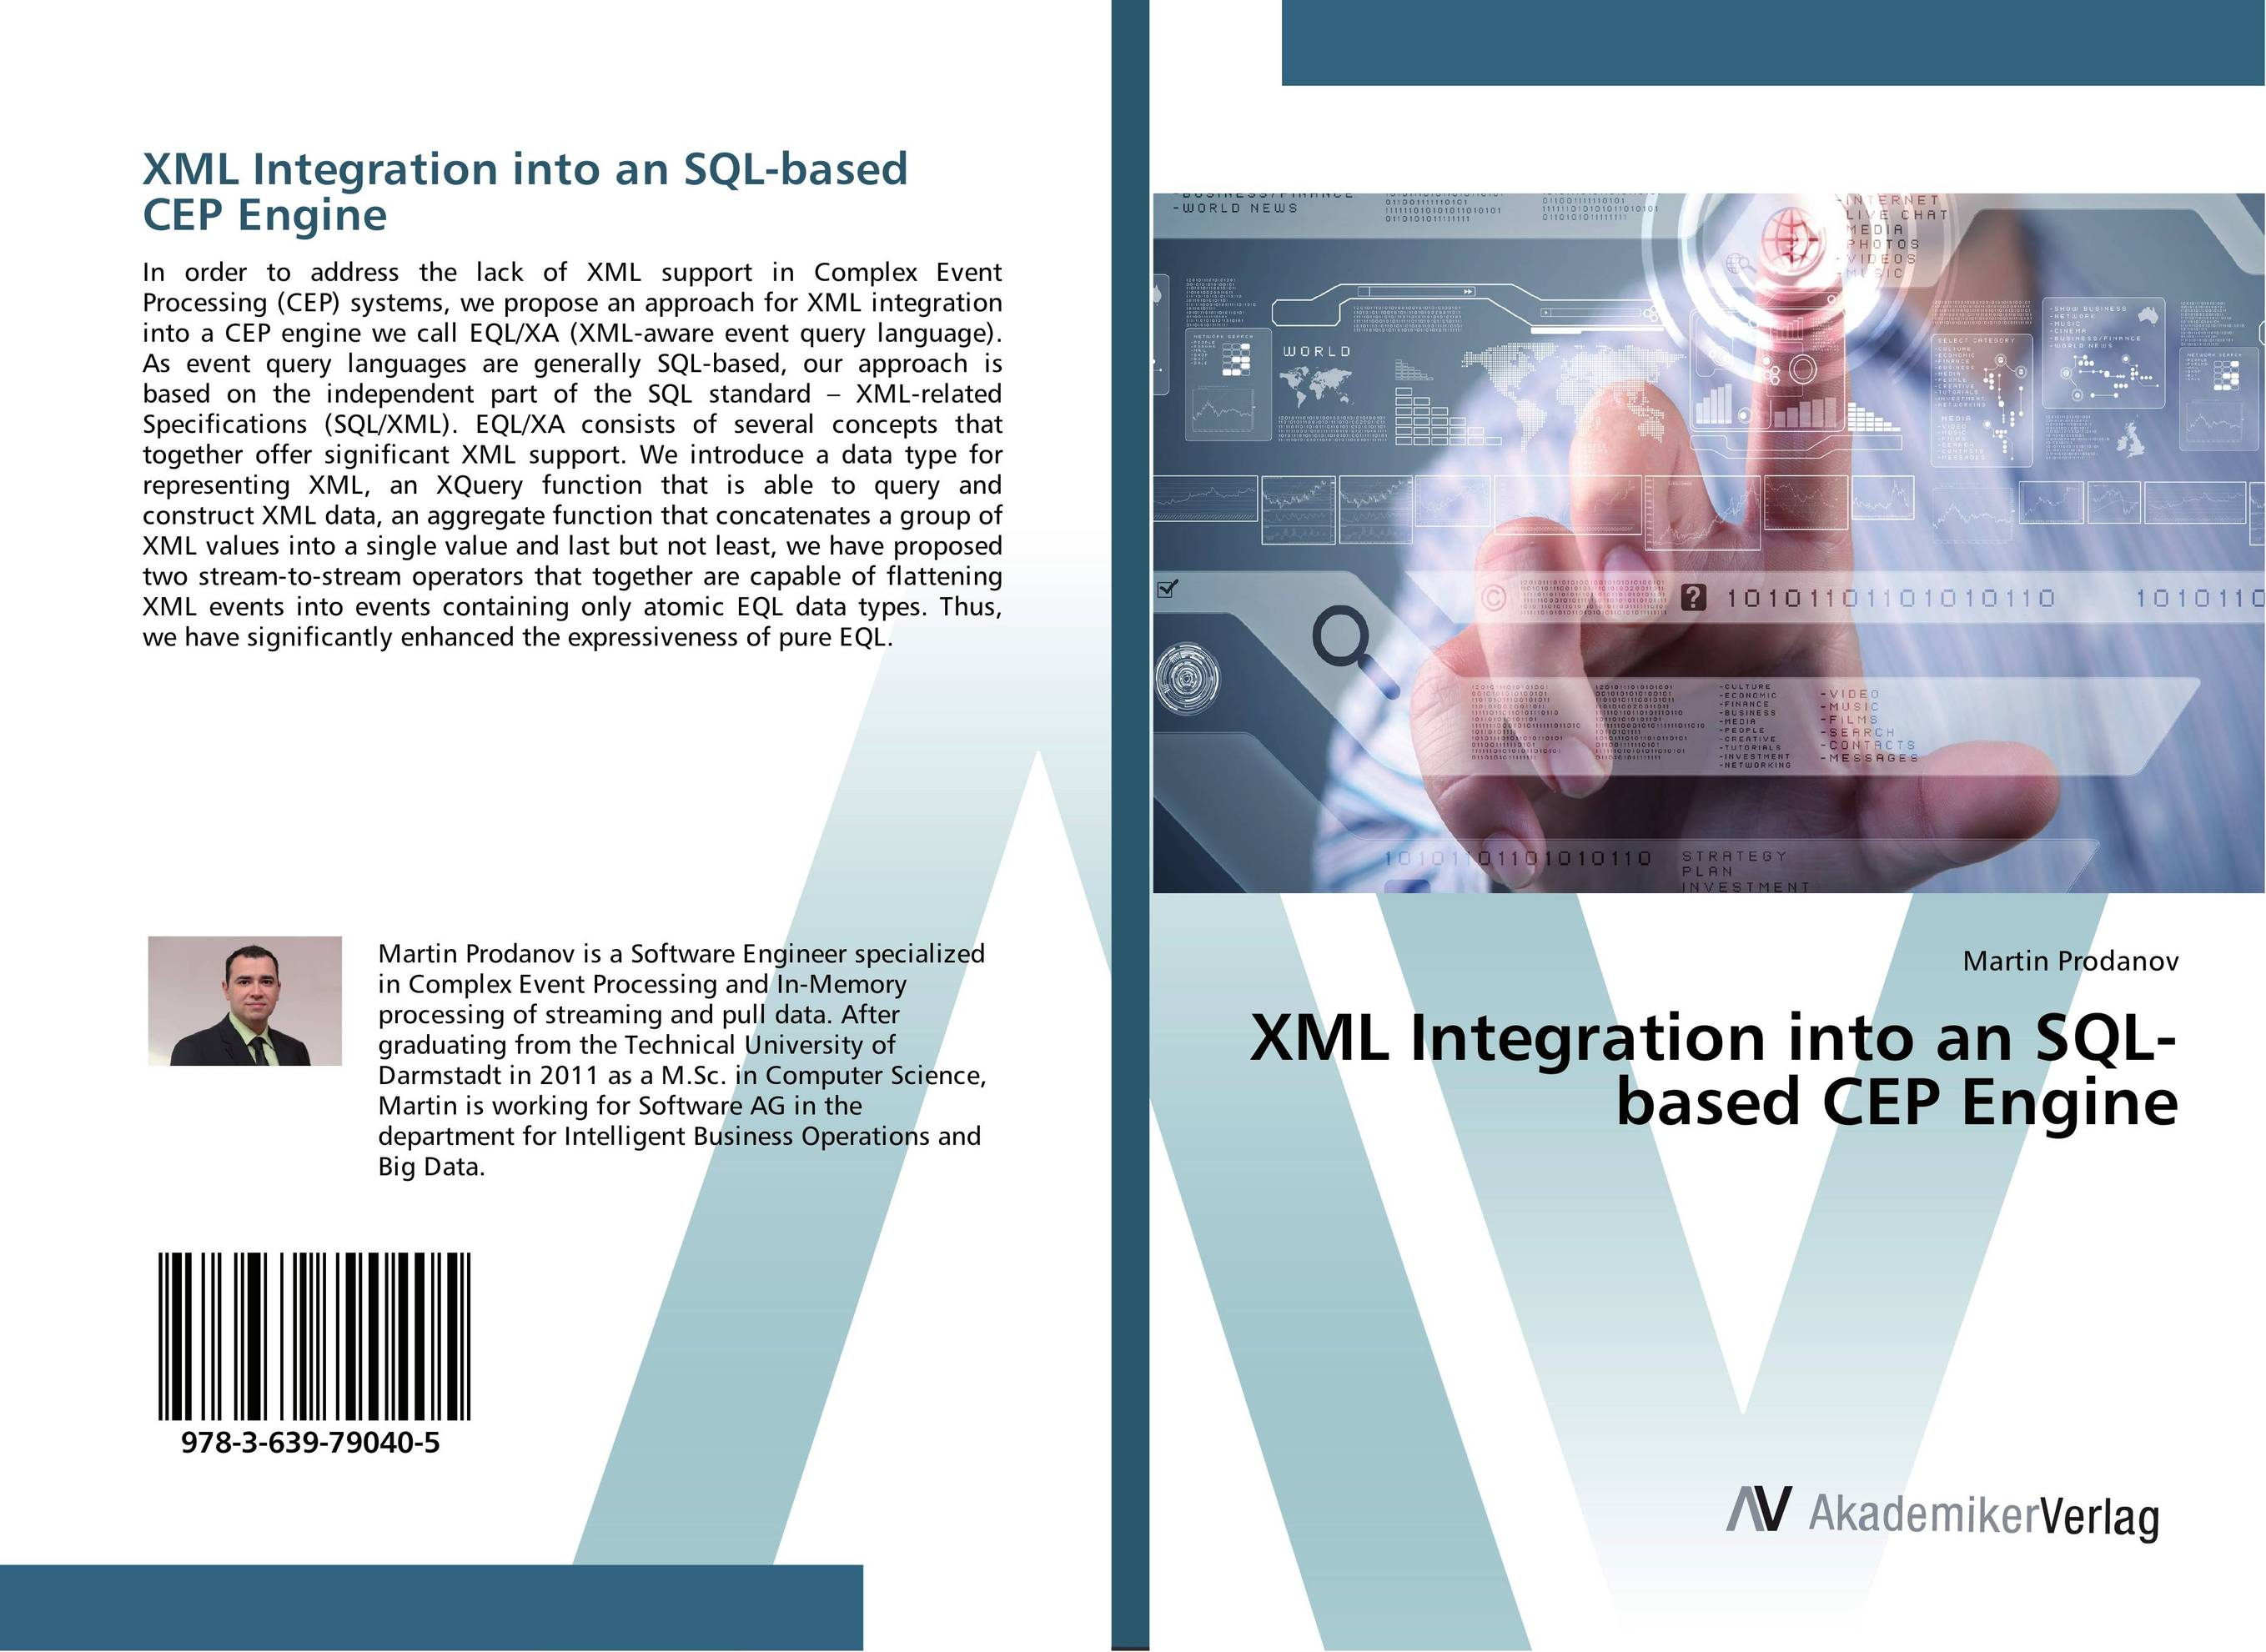 XML Integration into an SQL-based CEP Engine sitemap 160 xml